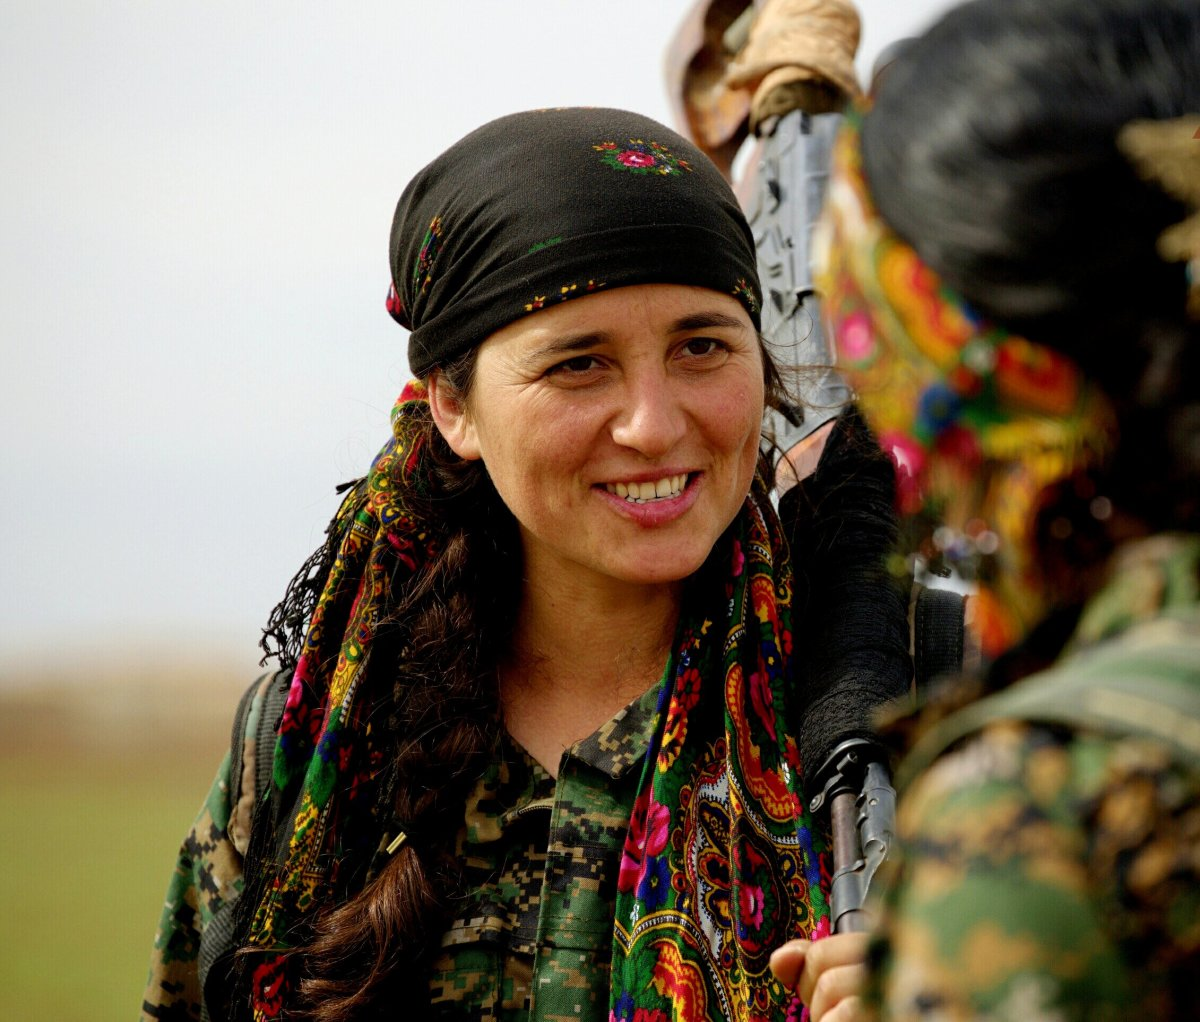 These gutsy women are Kurdish fighters who are on the front lines battling against ISIL.